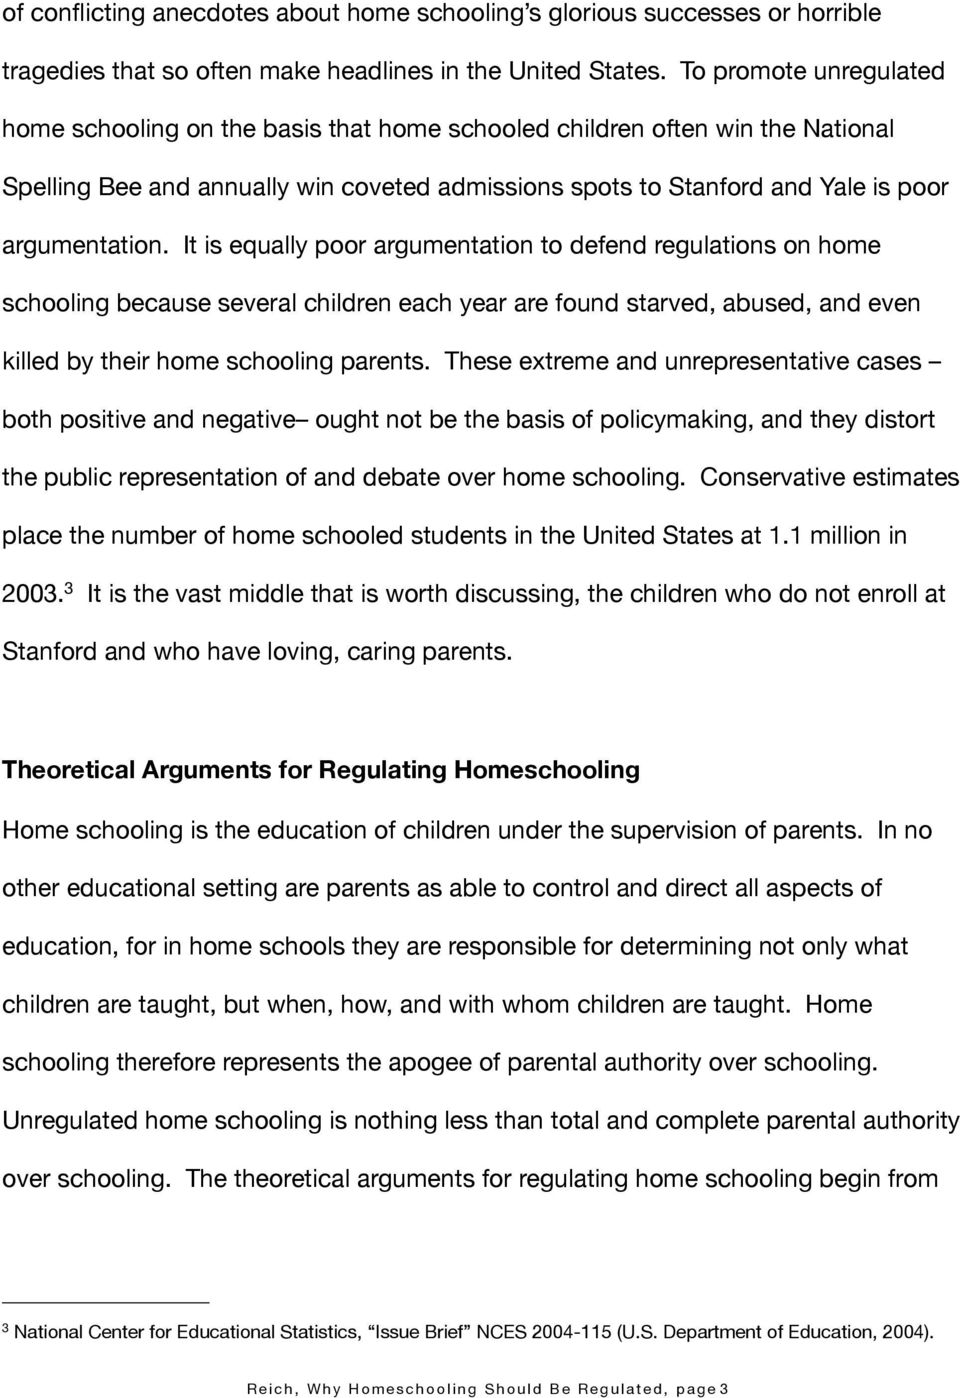 why homeschooling should be regulated pdf it is equally poor argumentation to defend regulations on home schooling because several children each year